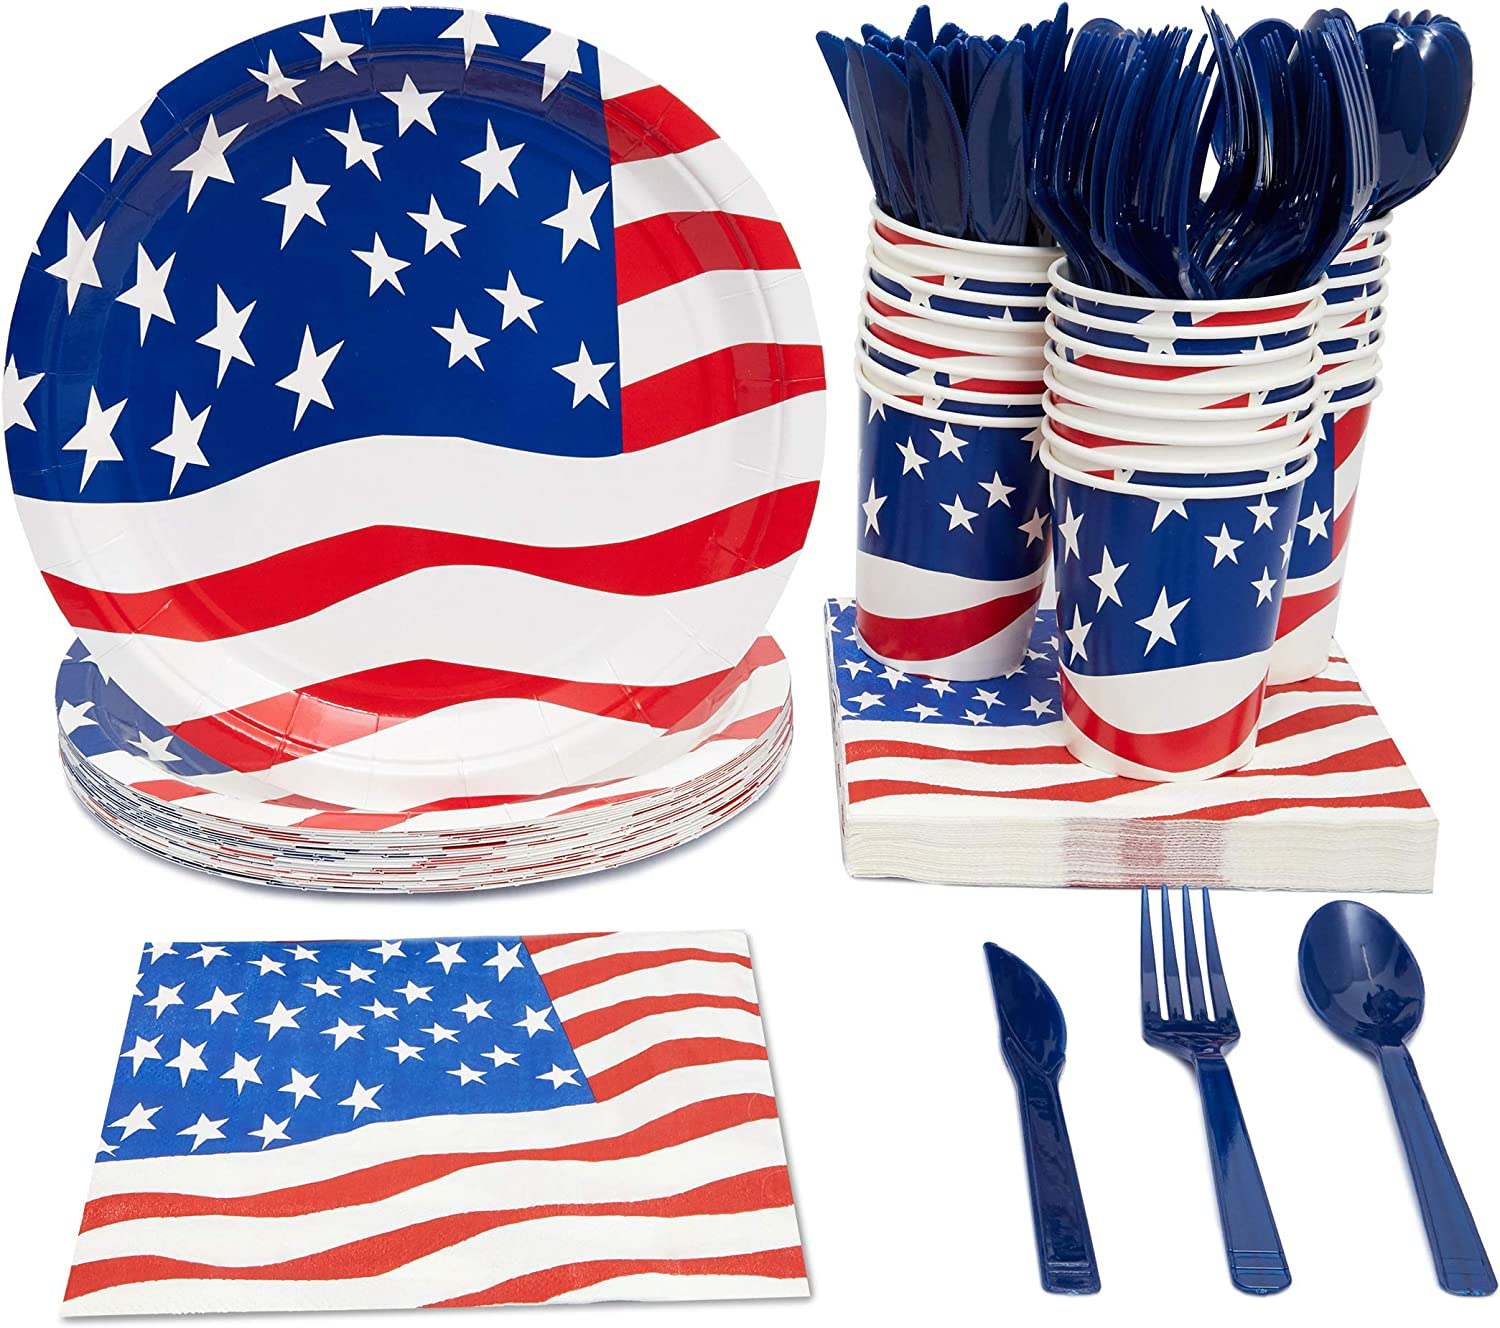 American Flag Party Bundle, Includes Paper Plates, Napkins, Cups and Cutlery (Serves 24, 144 Total Pieces): Toys & Games